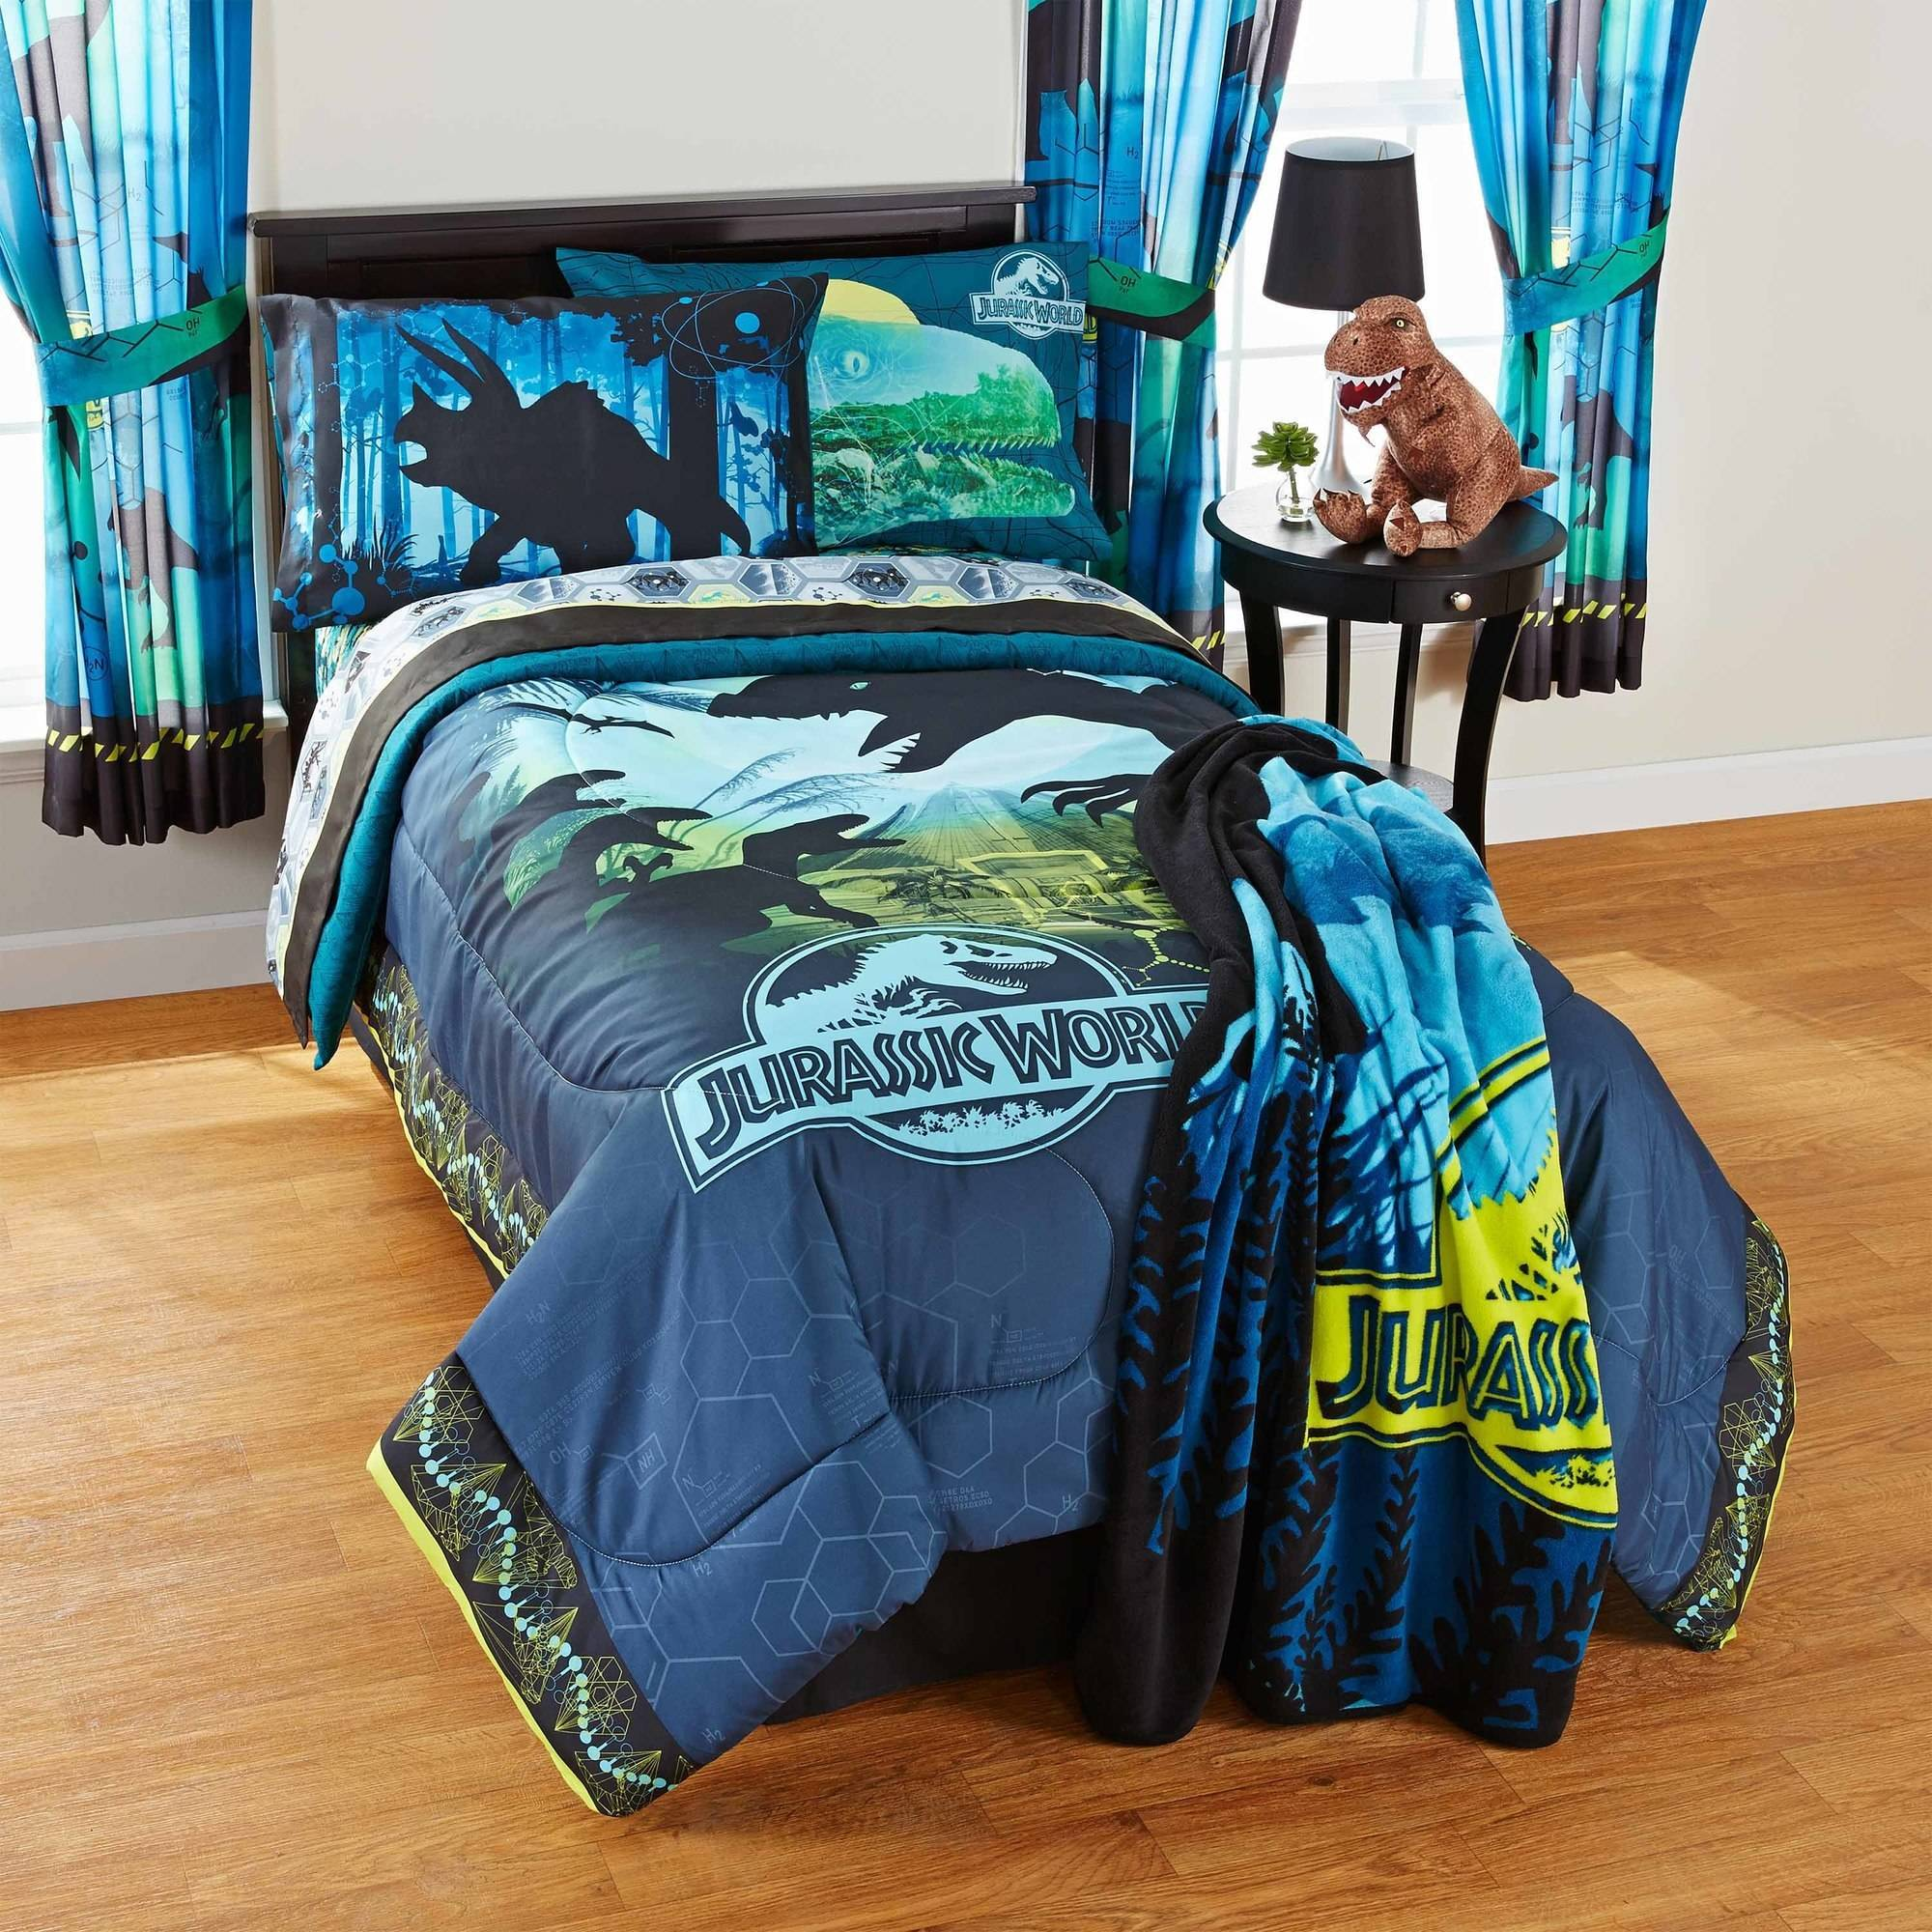 John Deere Beds for Kids | John Deere Full Size Bedding | John Deere Bedding